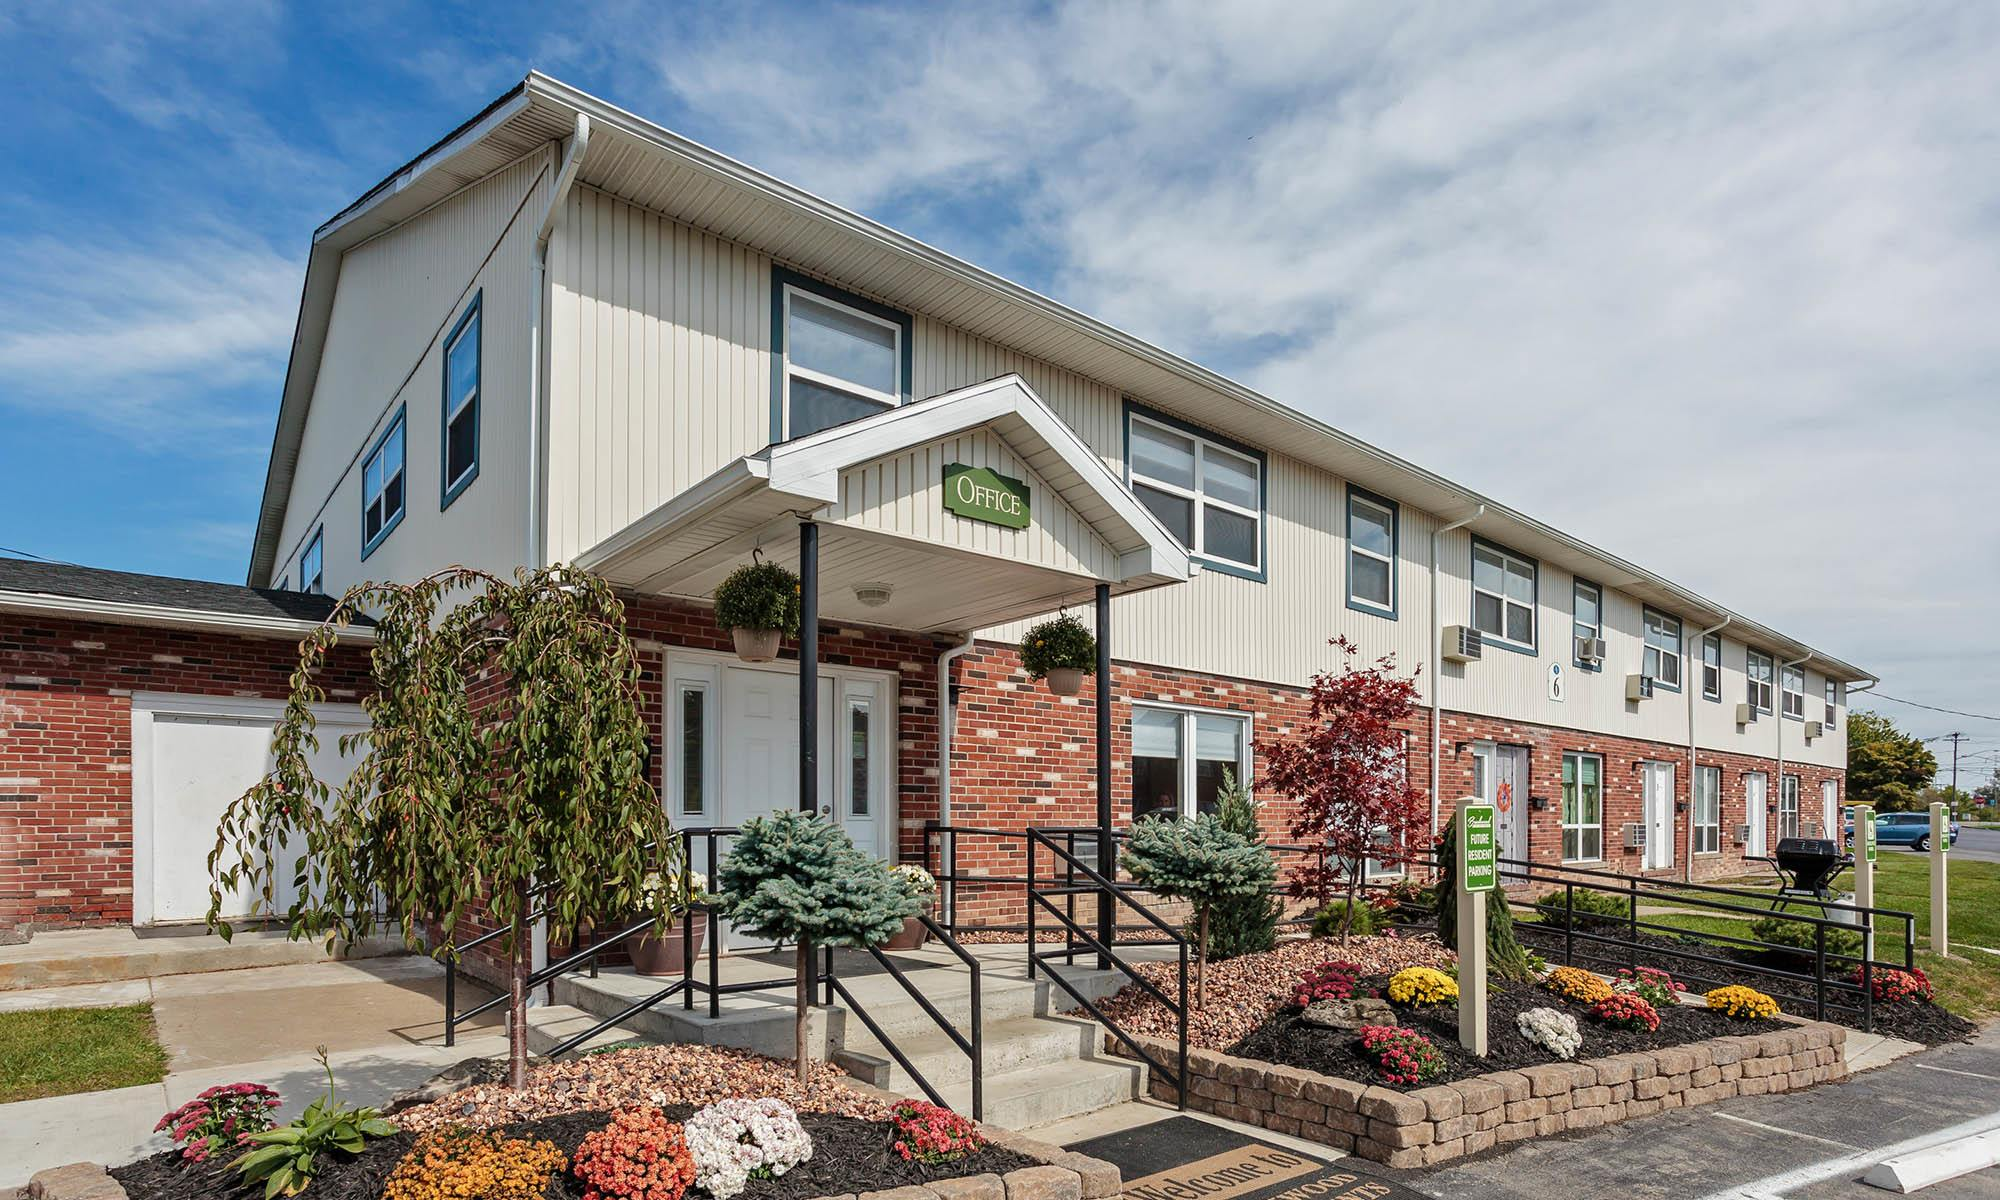 Liverpool ny apartments for rent in north syracuse 3 bedroom apartments for rent in syracuse ny